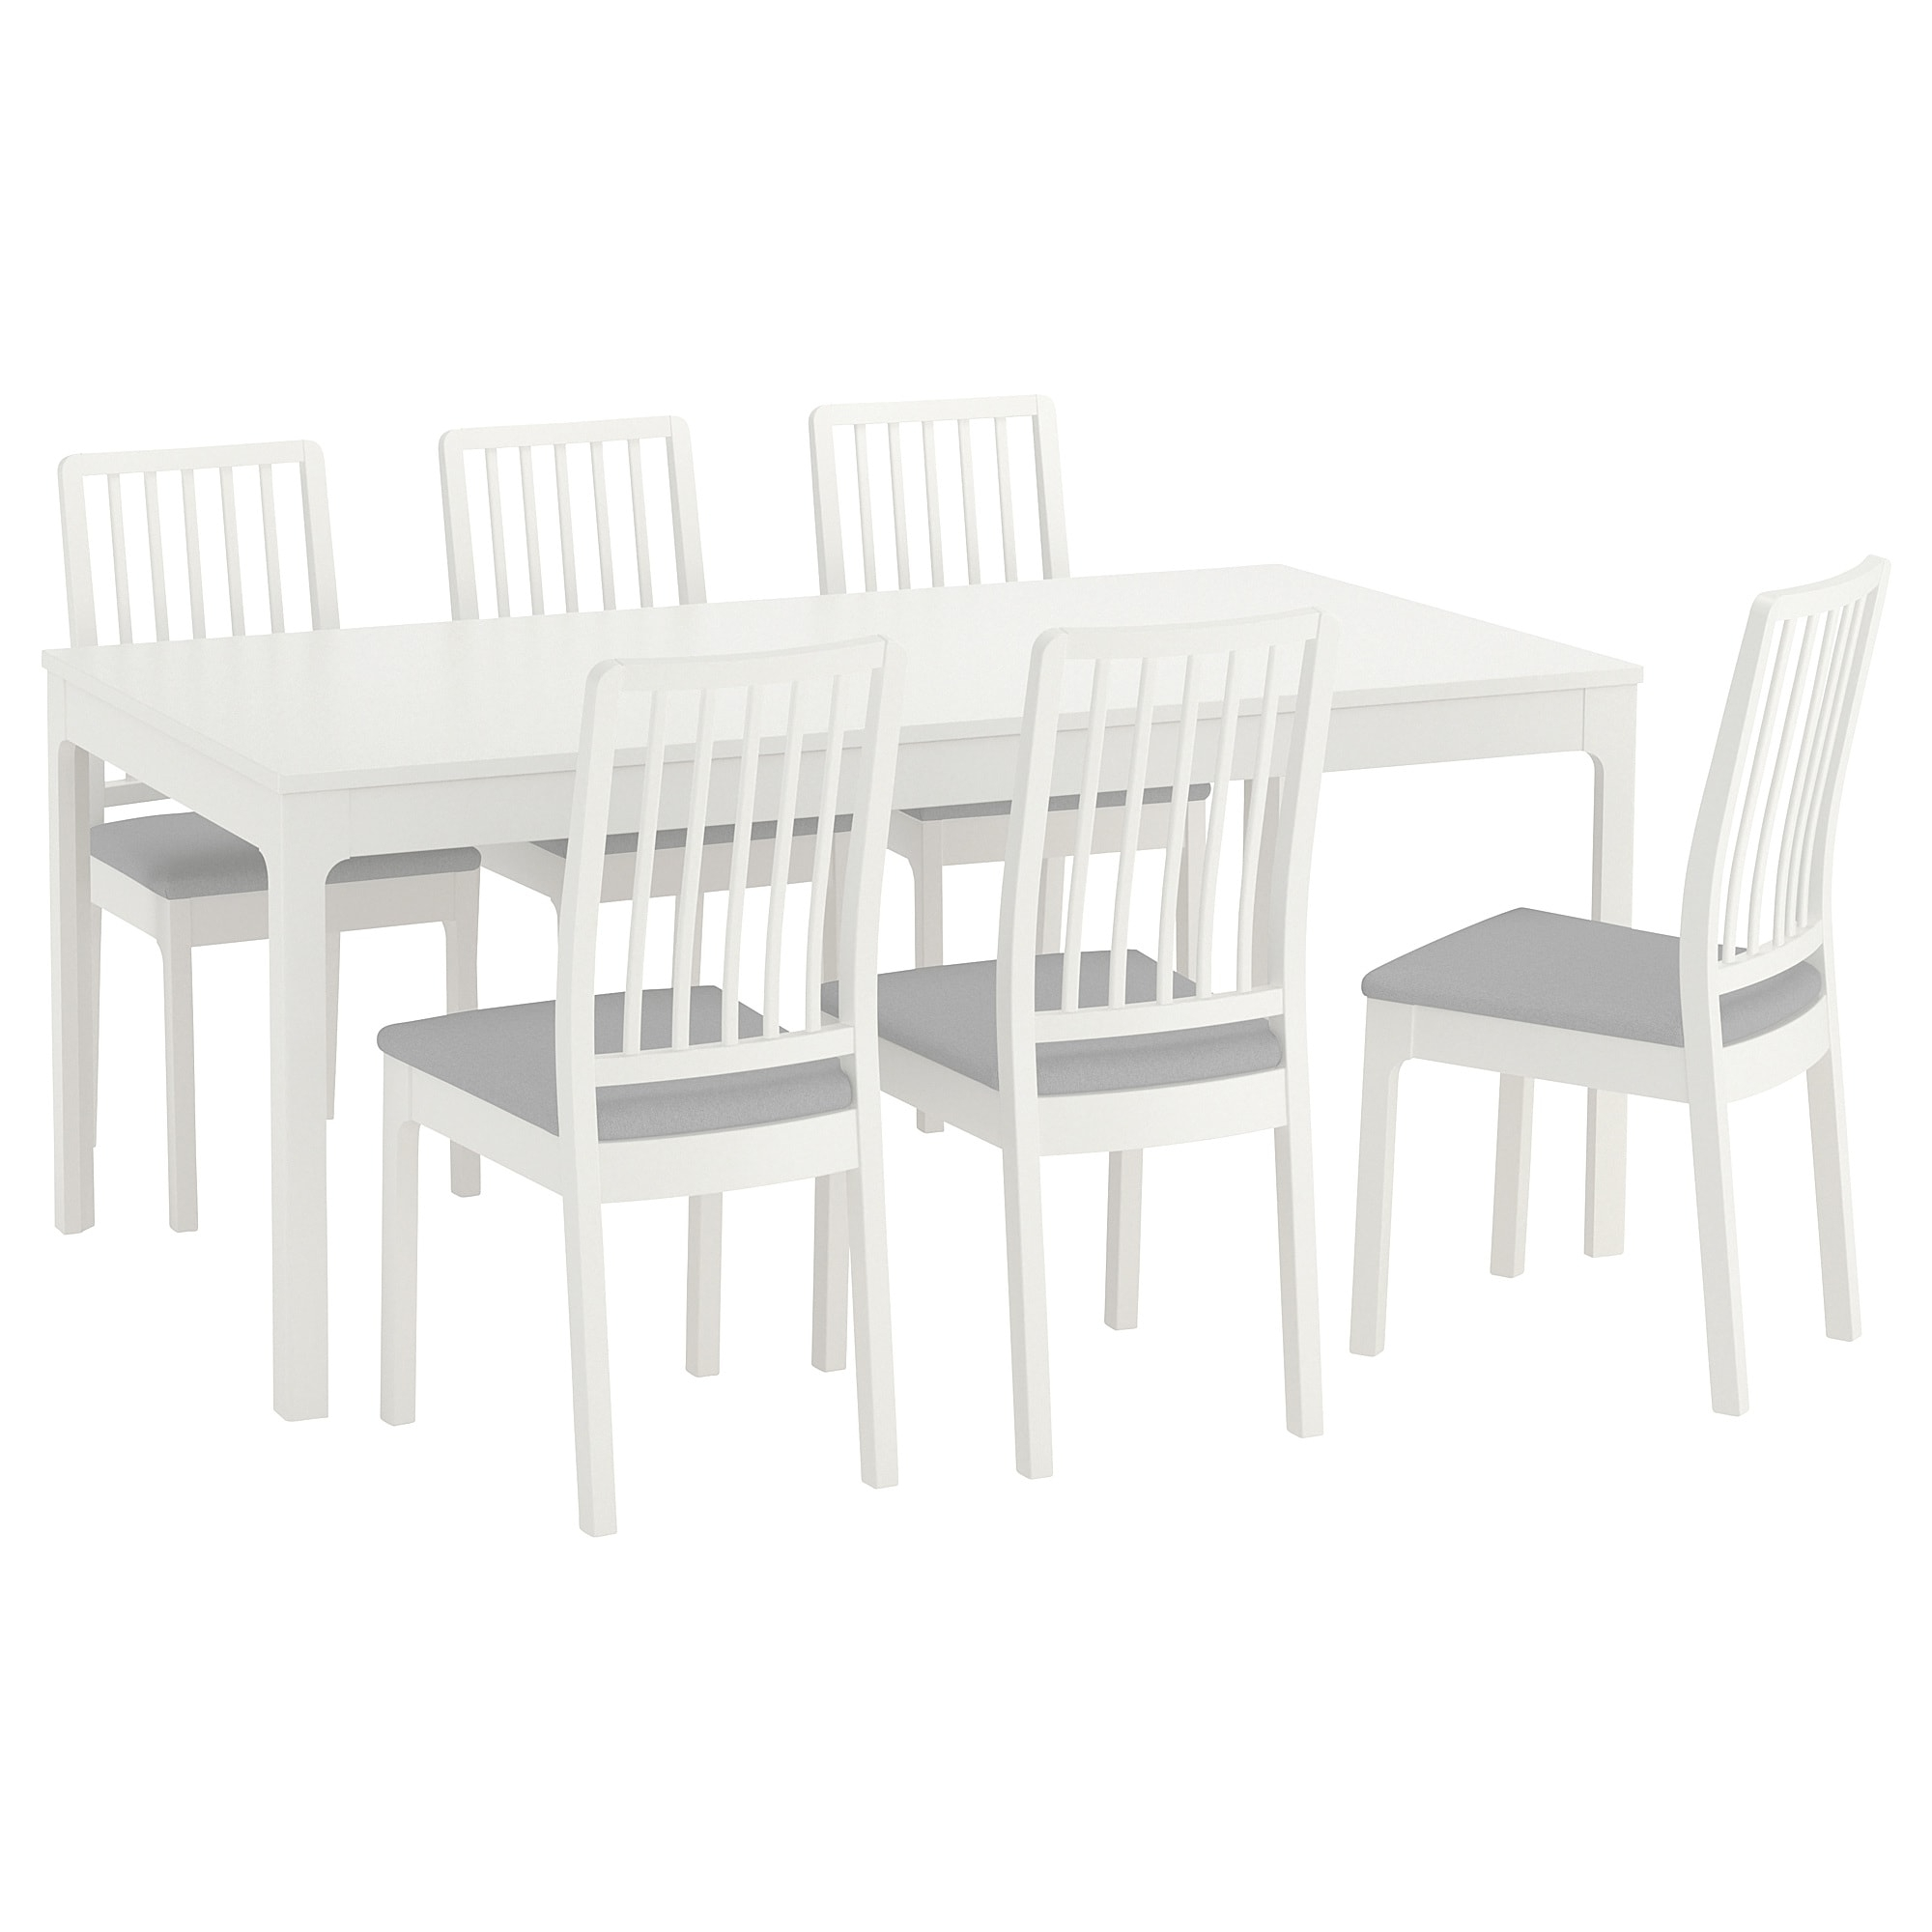 Favorite White Dining Tables And 6 Chairs Intended For Ekedalen/ekedalen Table And 6 Chairs White/orrsta Light Grey 180/ (View 9 of 25)